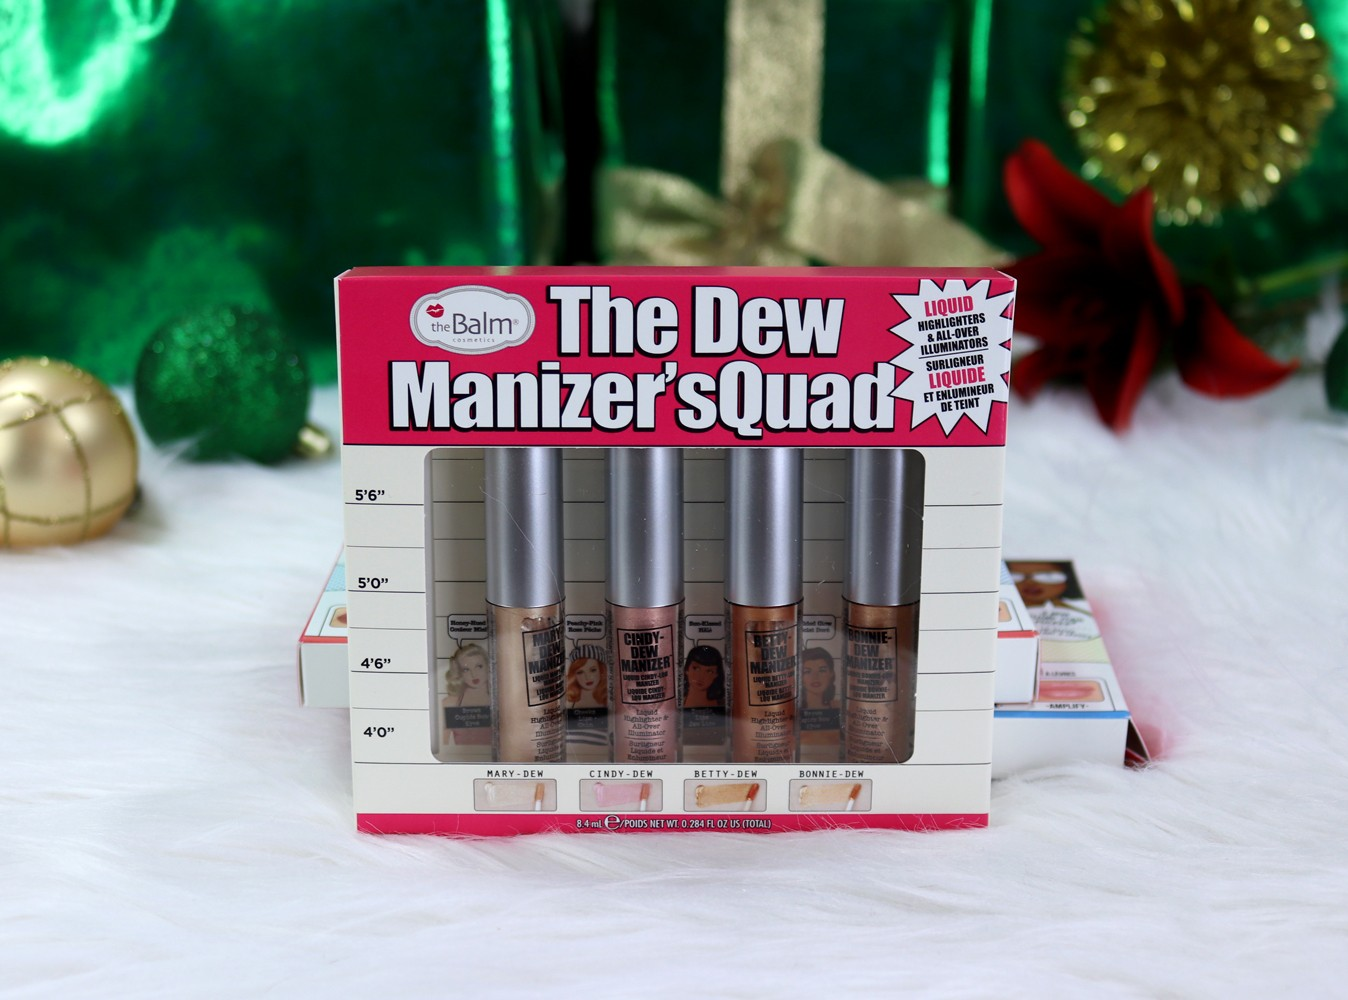 Cruelty Free Holiday Gift Guide - The Balm Dew Manizer'sQuad